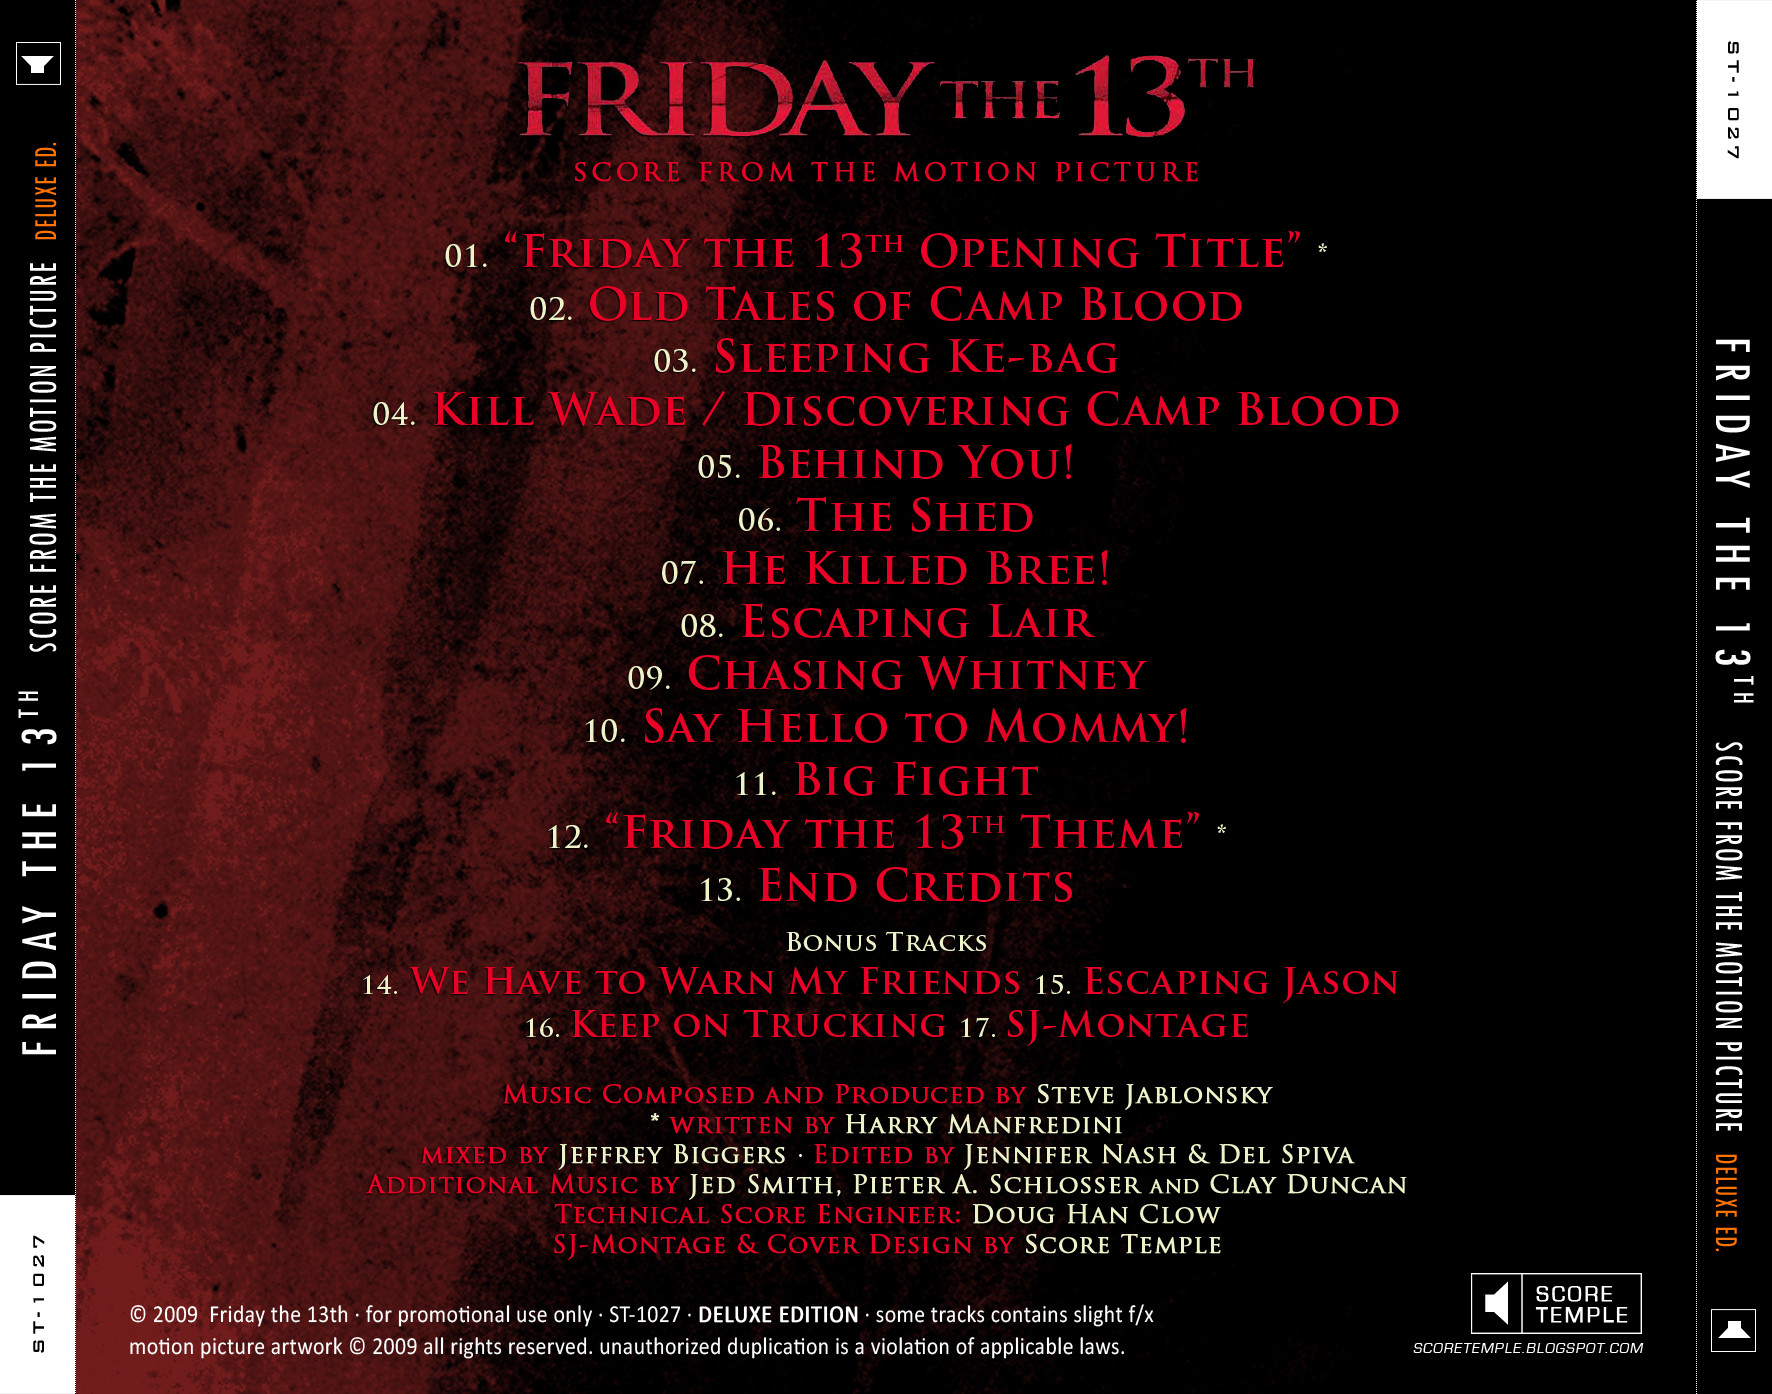 film music site friday the 13th soundtrack steve